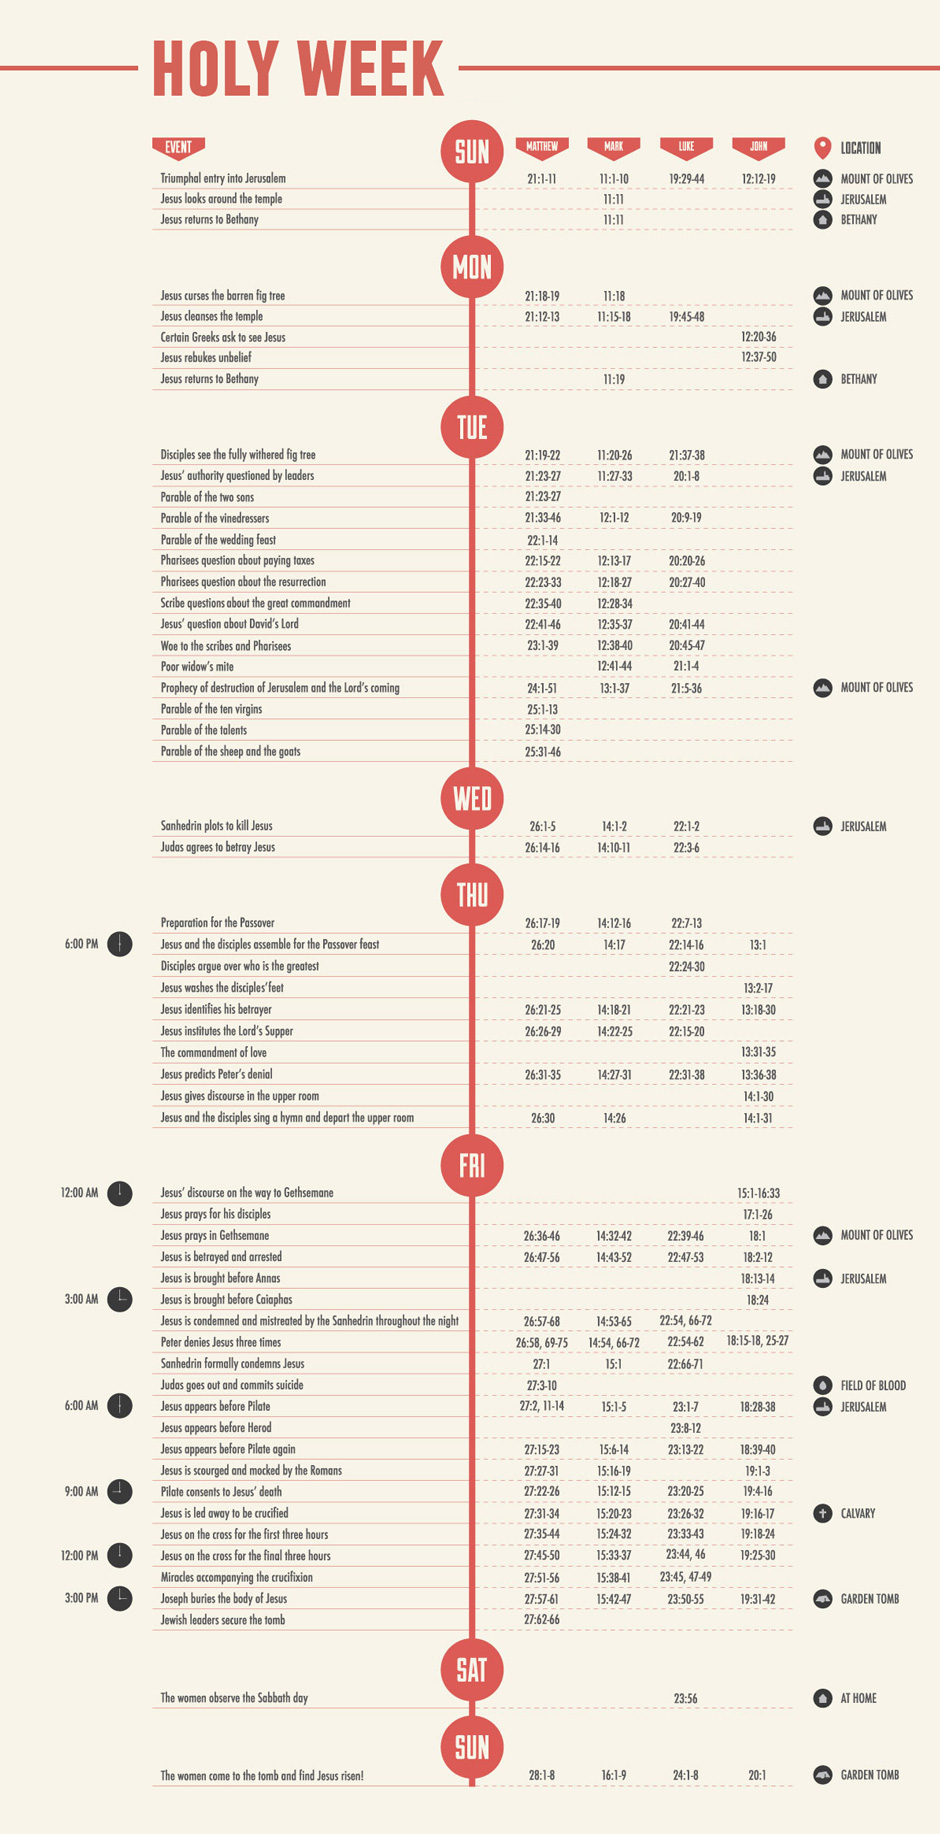 Info Graphic - Holy Week